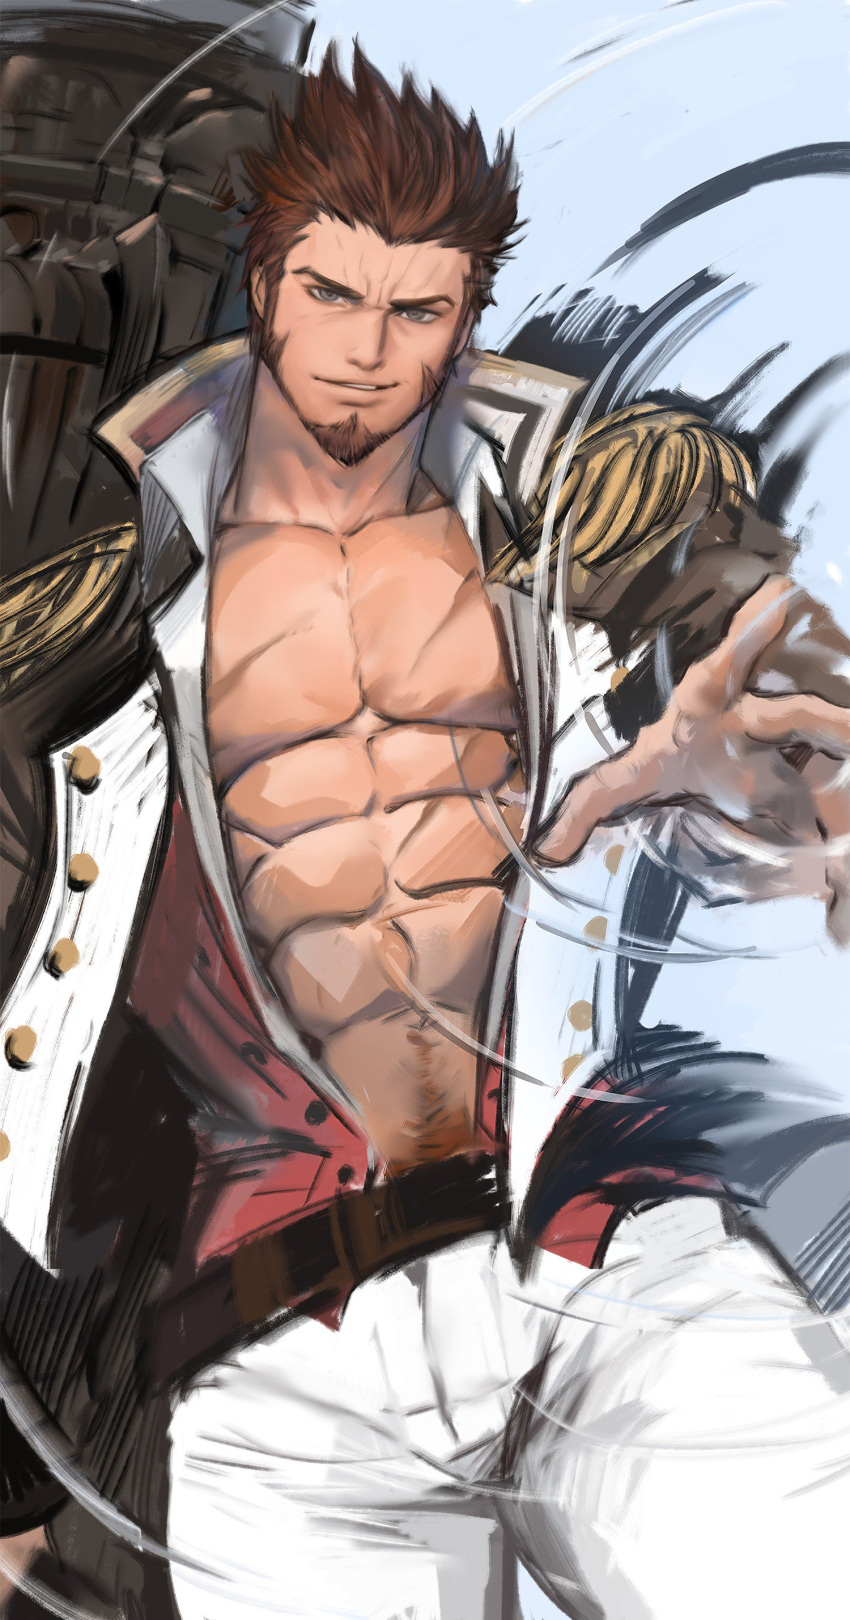 1boy abs absurdres bara beard belt blue_eyes brown_hair chest epaulettes facial_hair fate/grand_order fate_(series) highres huge_weapon jacket jang_ju_hyeon long_sleeves looking_at_viewer male_focus military military_uniform muscle napoleon_bonaparte_(fate/grand_order) open_clothes open_jacket pants pectorals pubic_hair scar sideburns simple_background smile smirk solo teeth uniform upper_body weapon